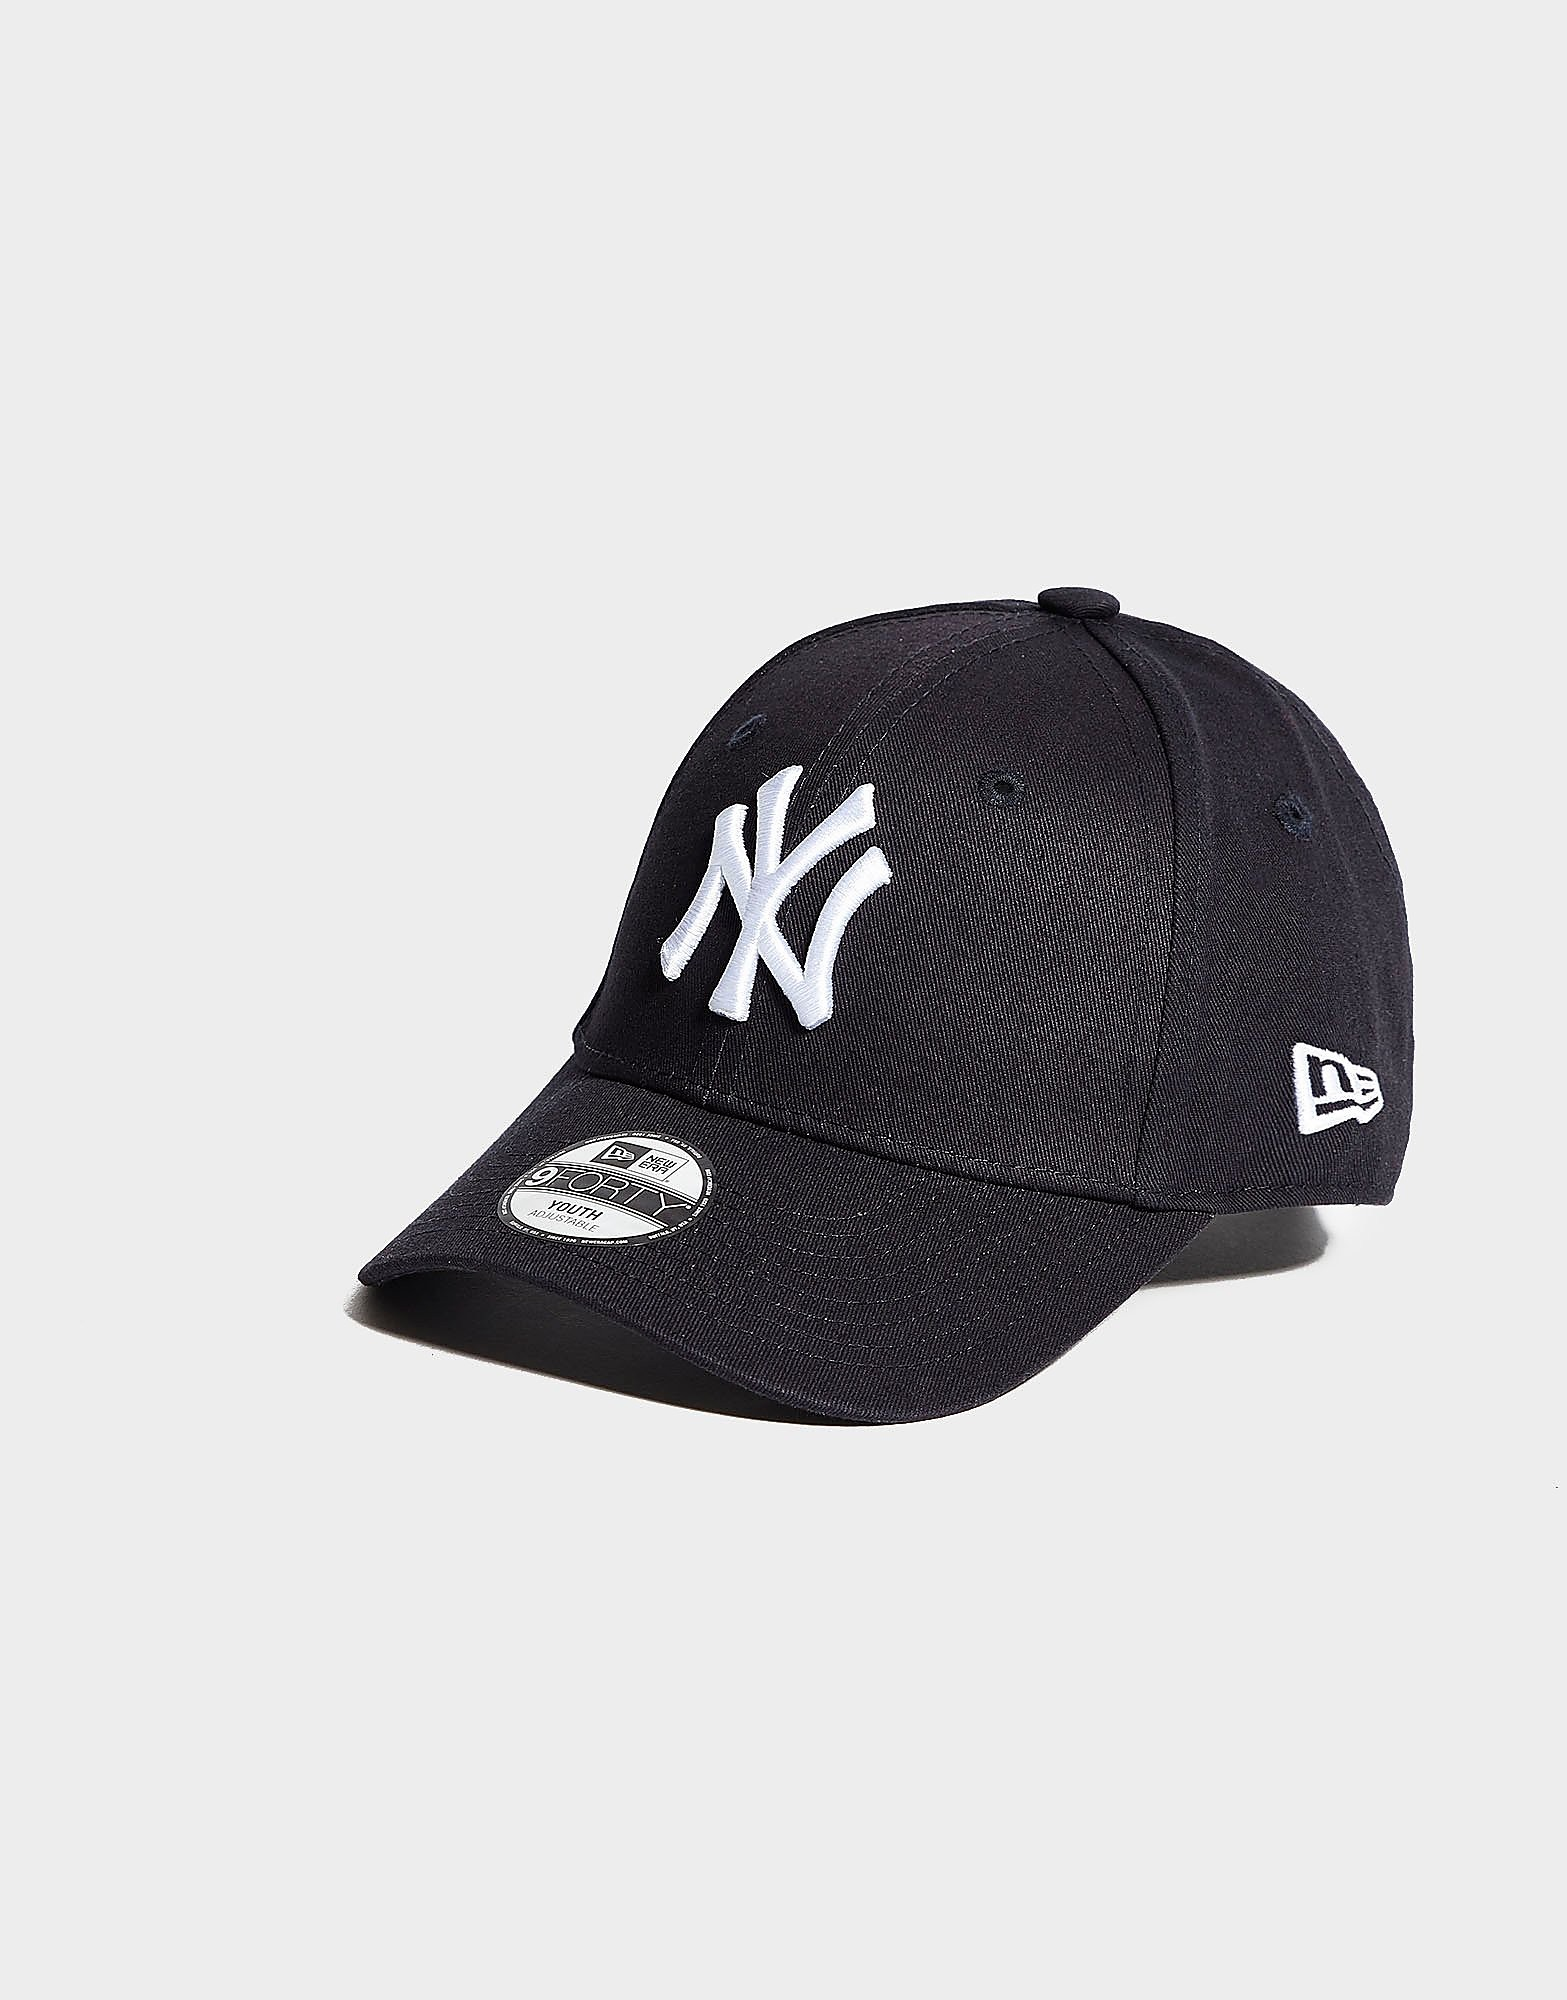 New Era 9FORTY MLB New York Yankees Cap für Kinder